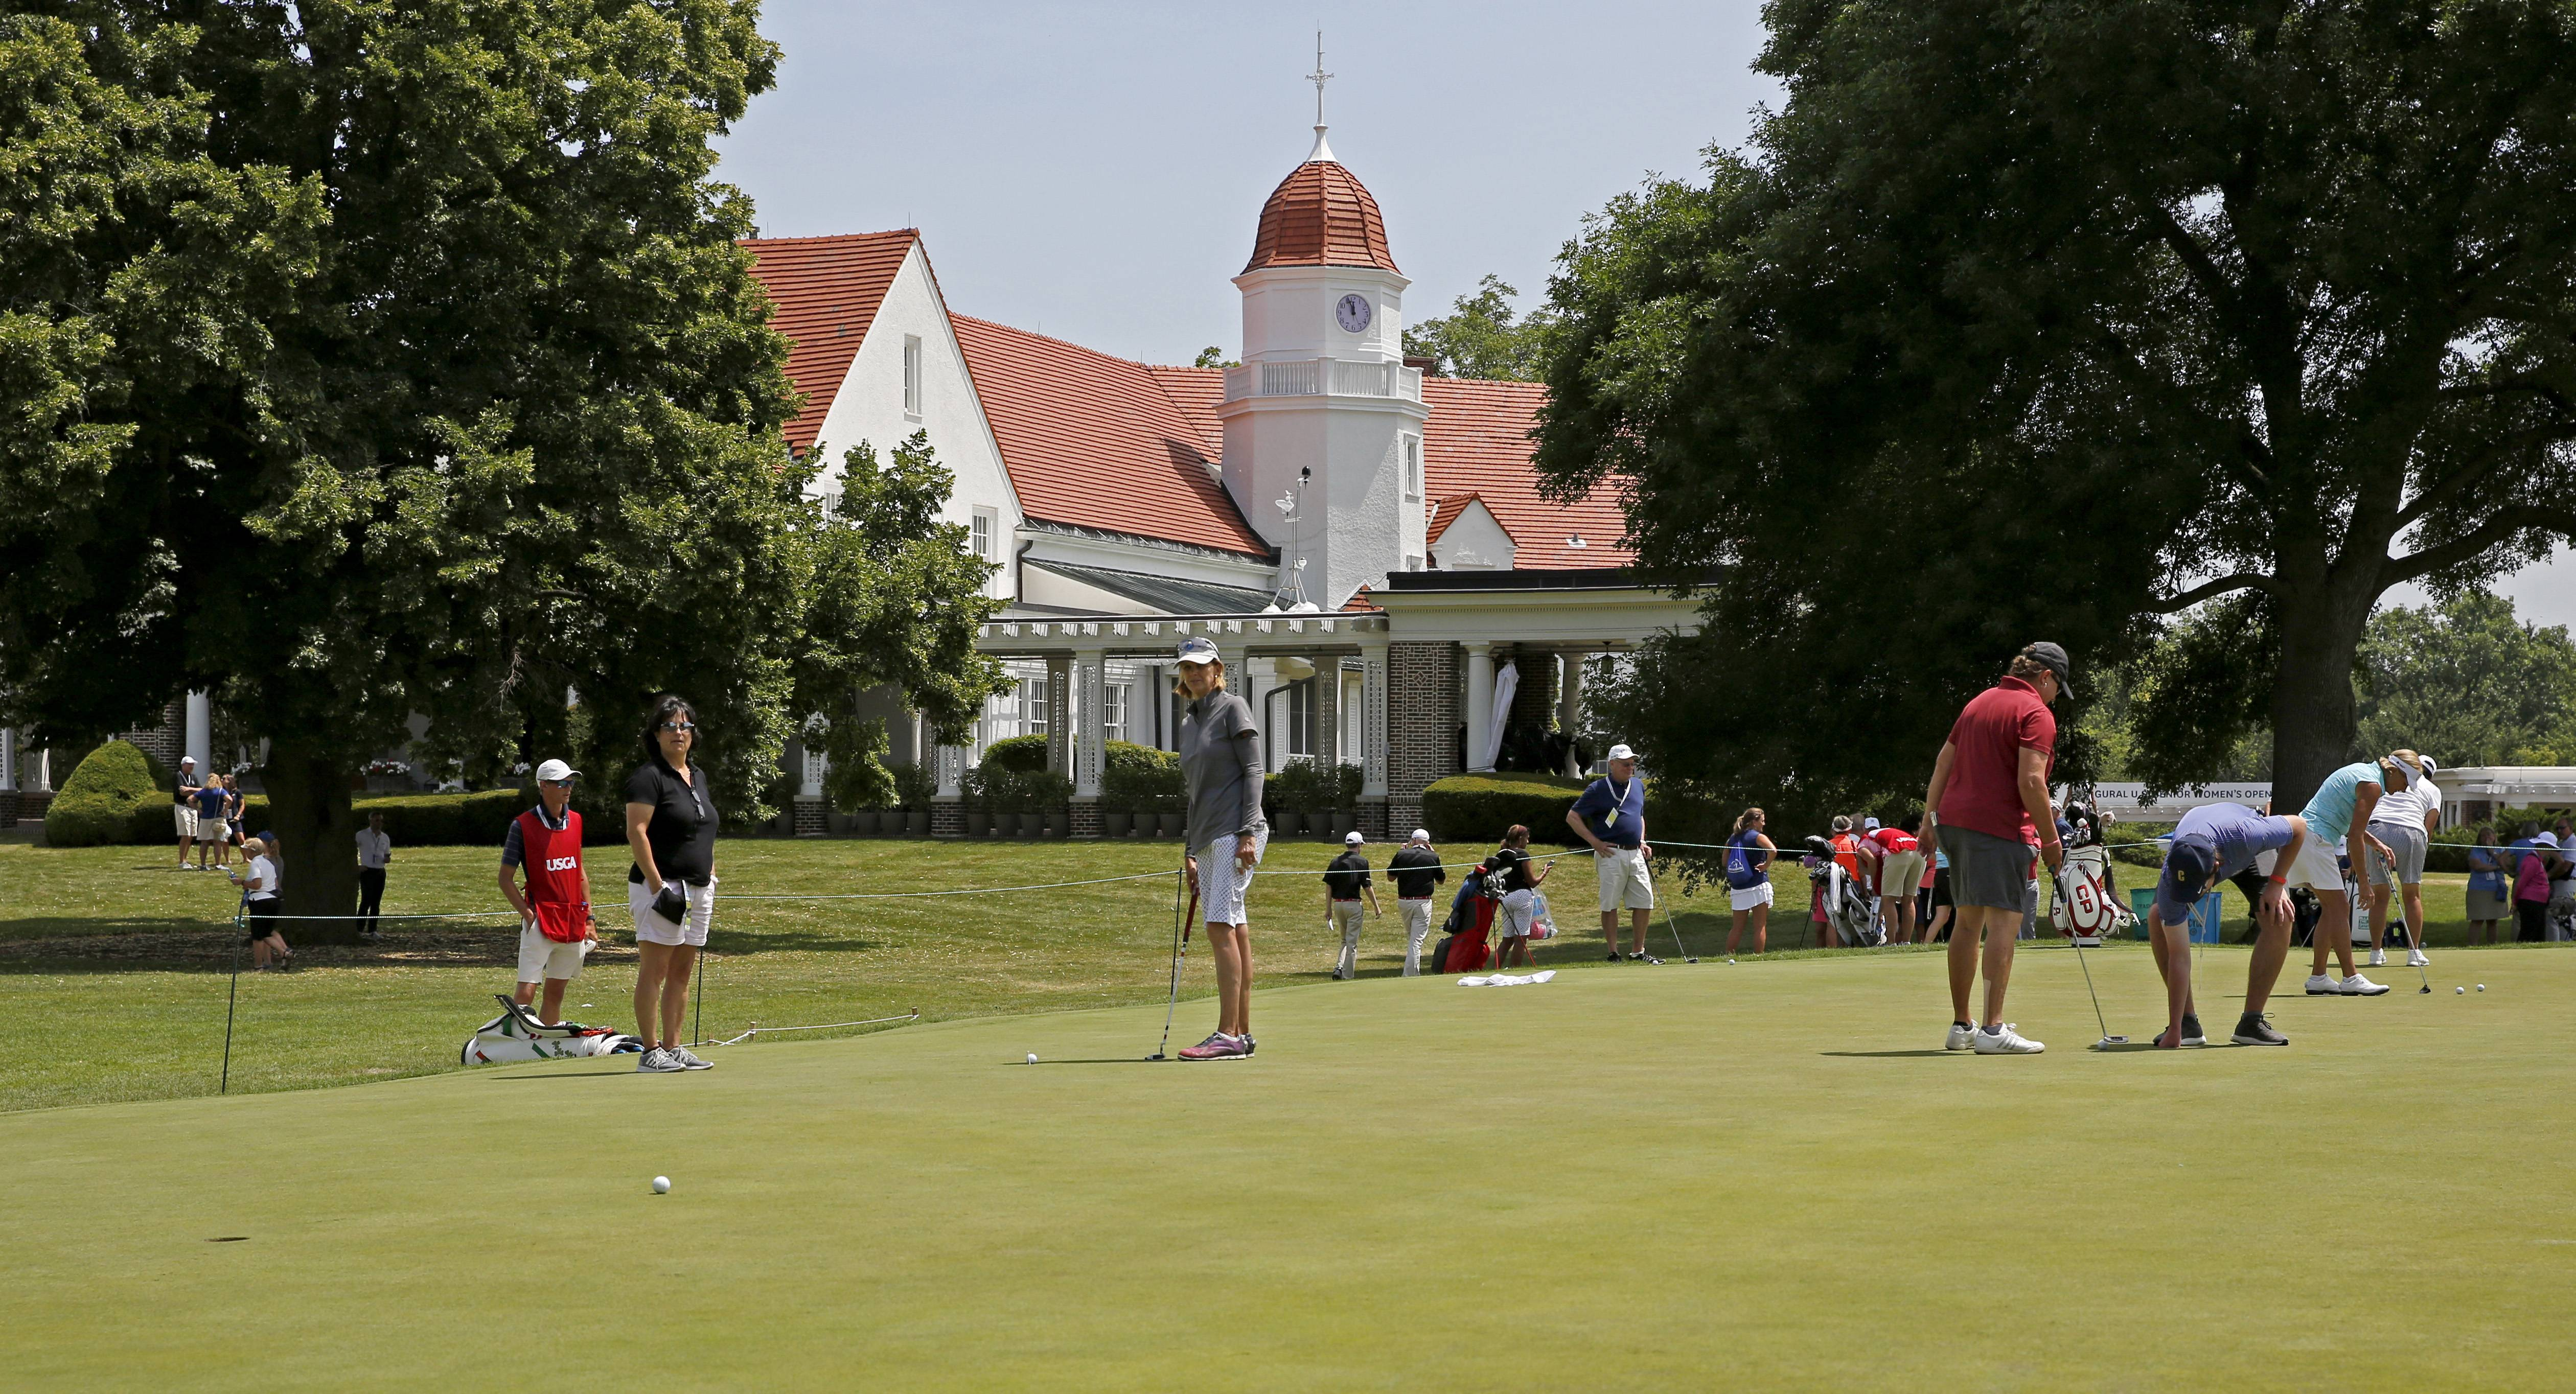 Daniel White/dwhite@dailyherald.comWomen golfers practice their putting for the inaugural U.S. Senior Women's Open at the Chicago Golf Club in Wheaton.